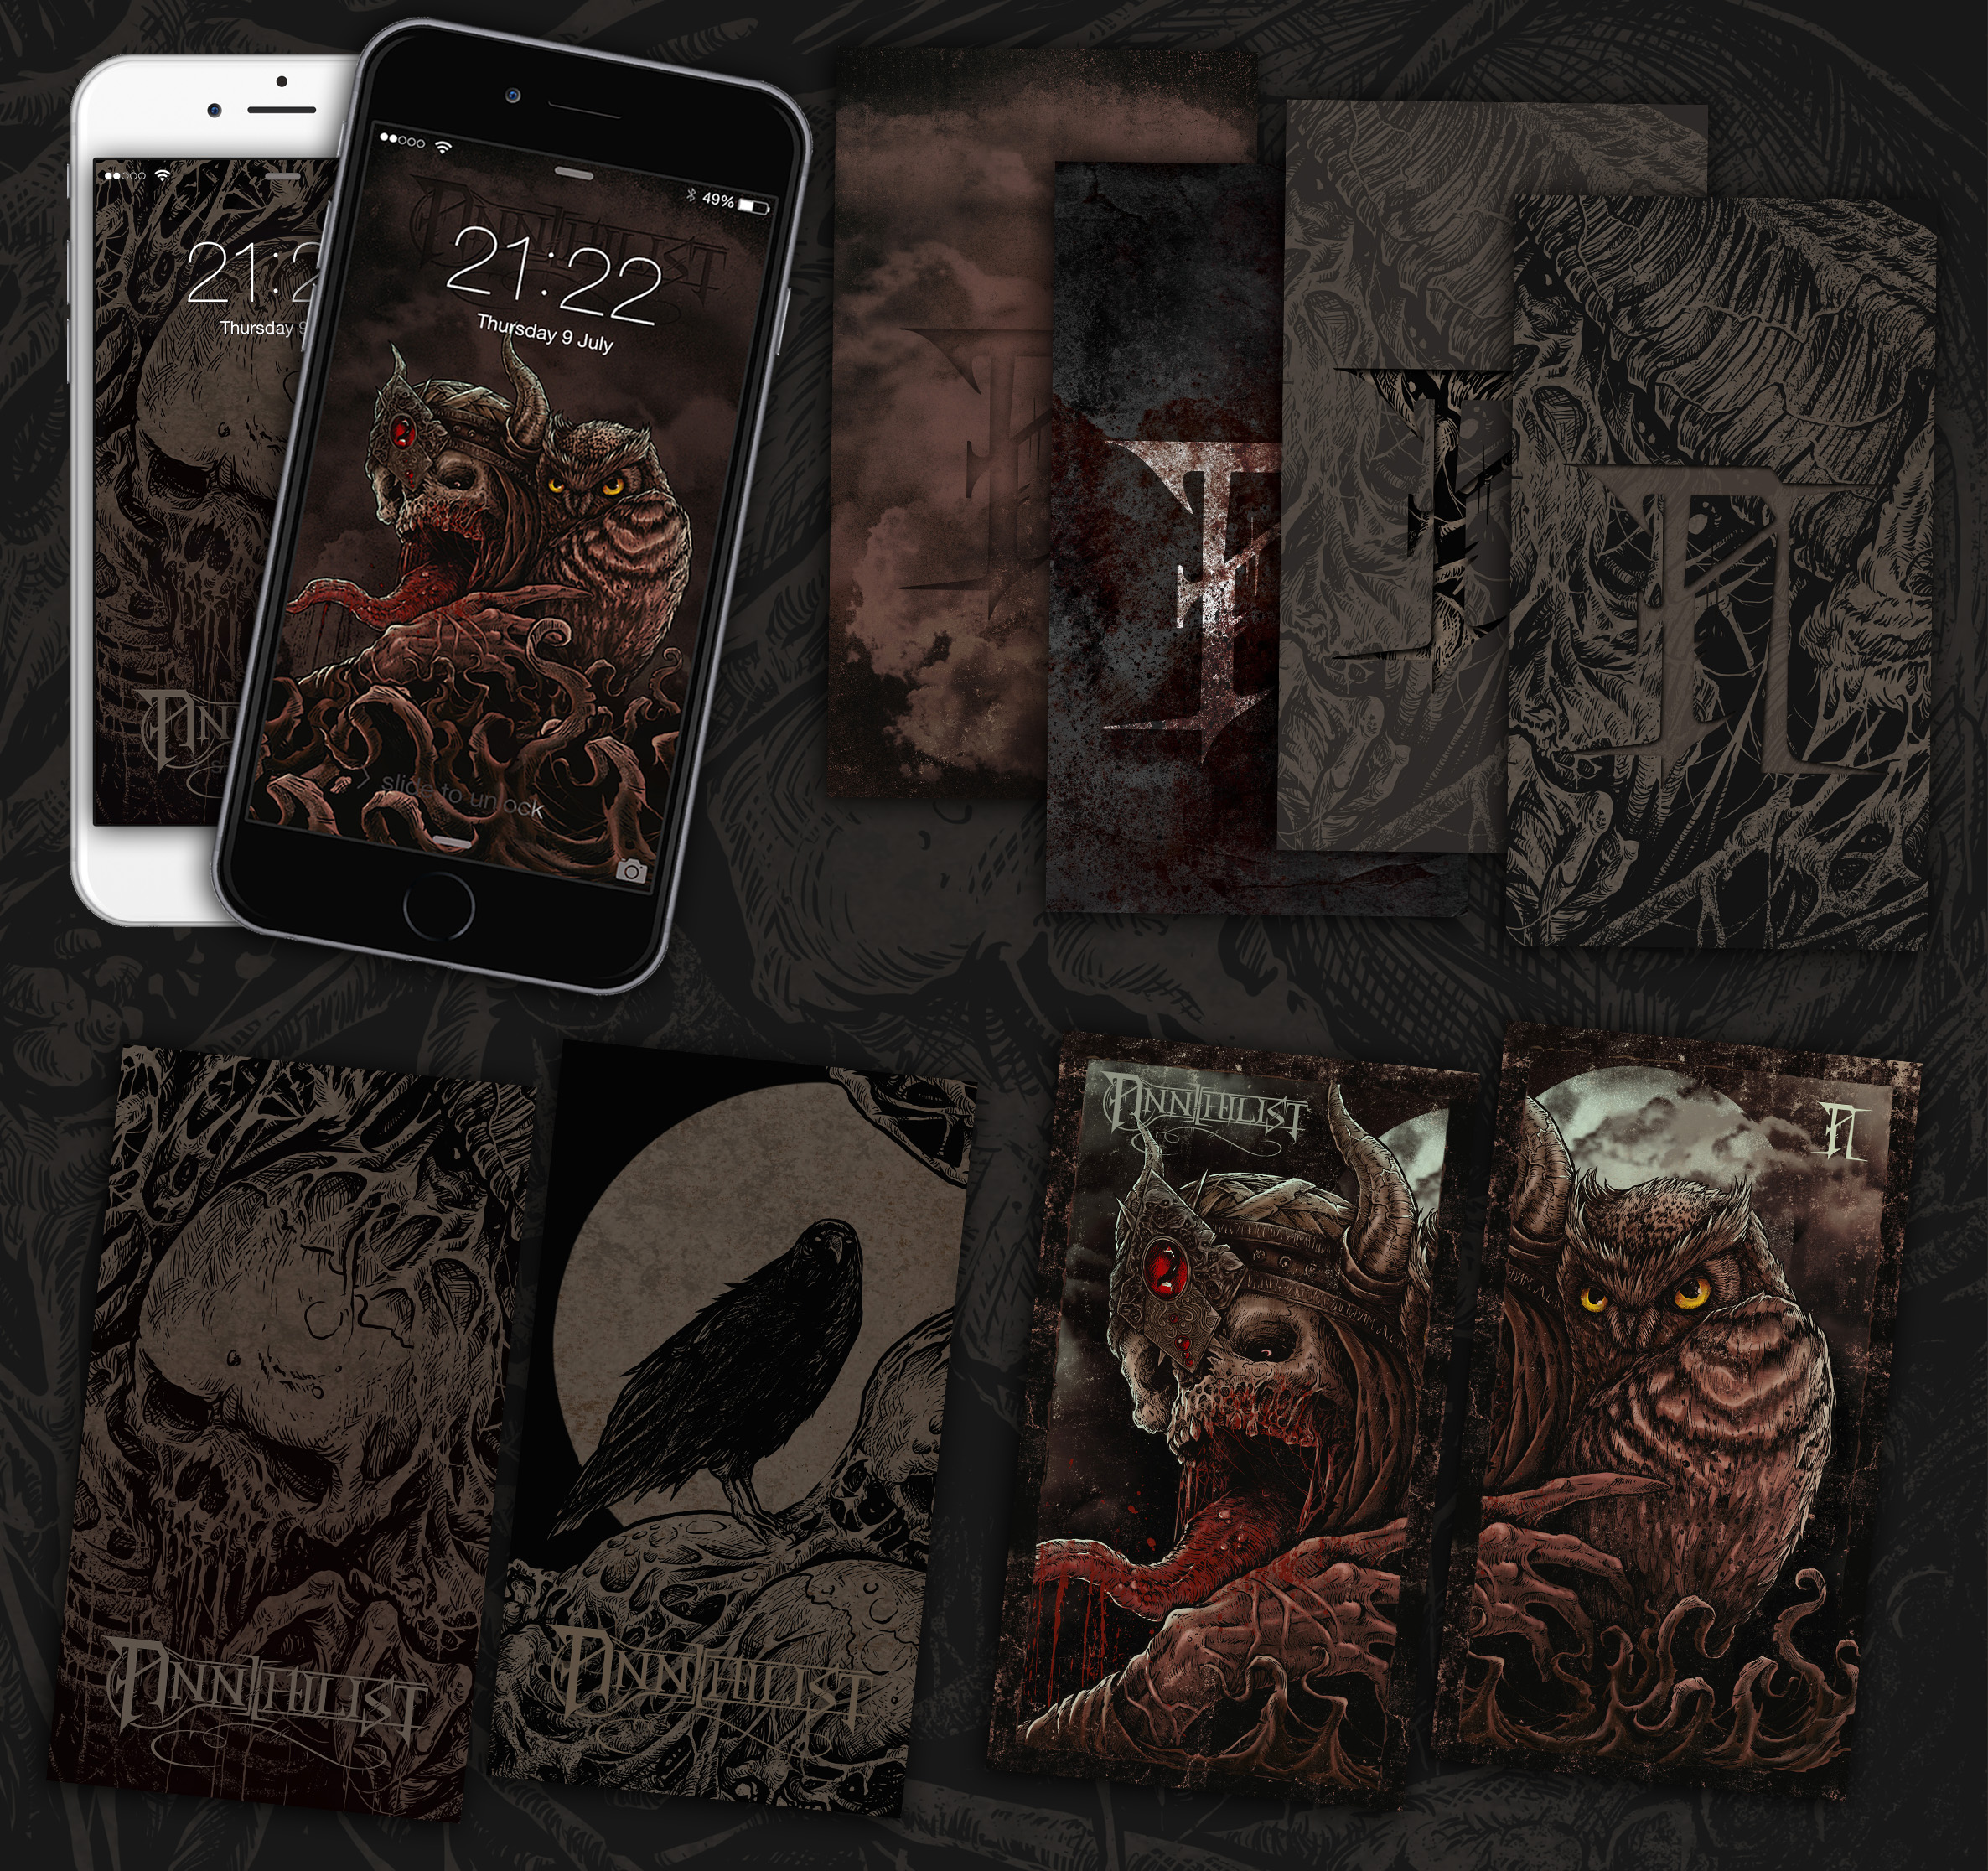 Annihilist Custom IPhone And Android Wallpapers Available For Free Download